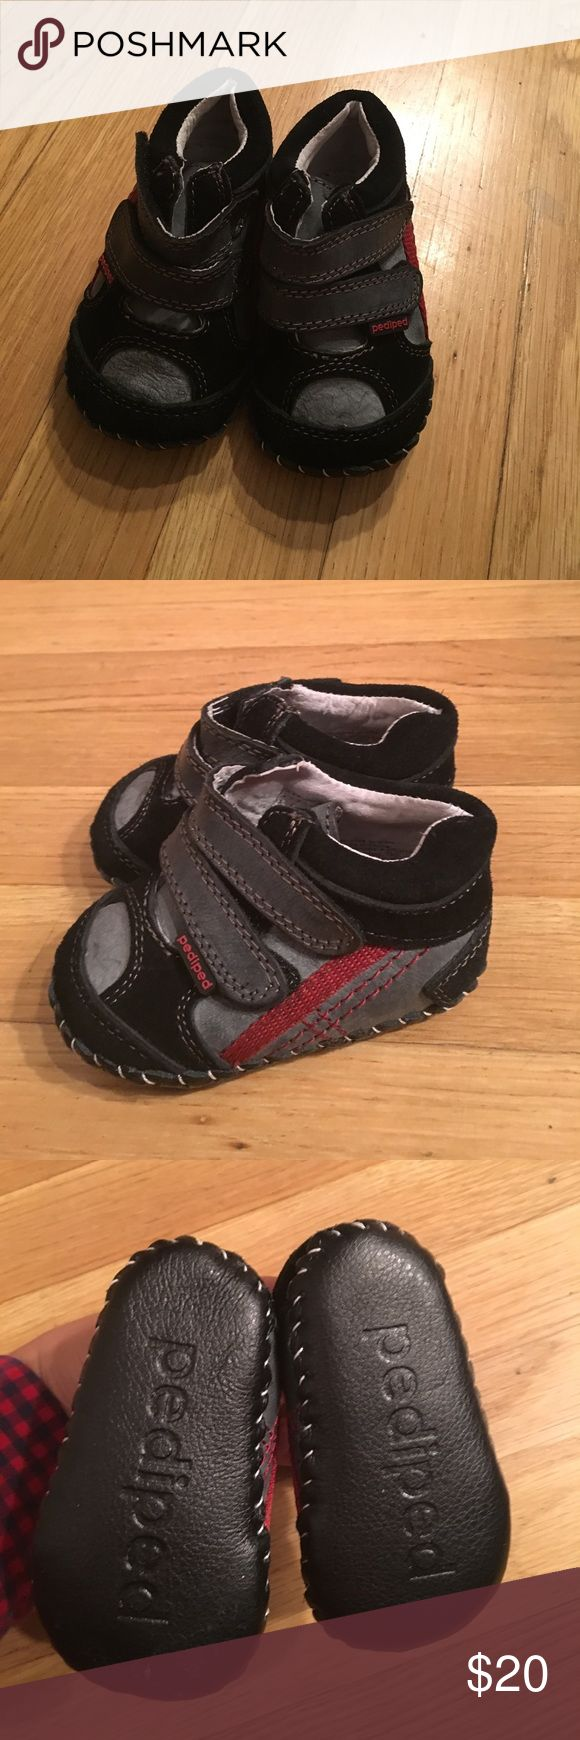 Pedi peds baby soft soles Brand new without box!! Super cute!! pediped Shoes Baby & Walker